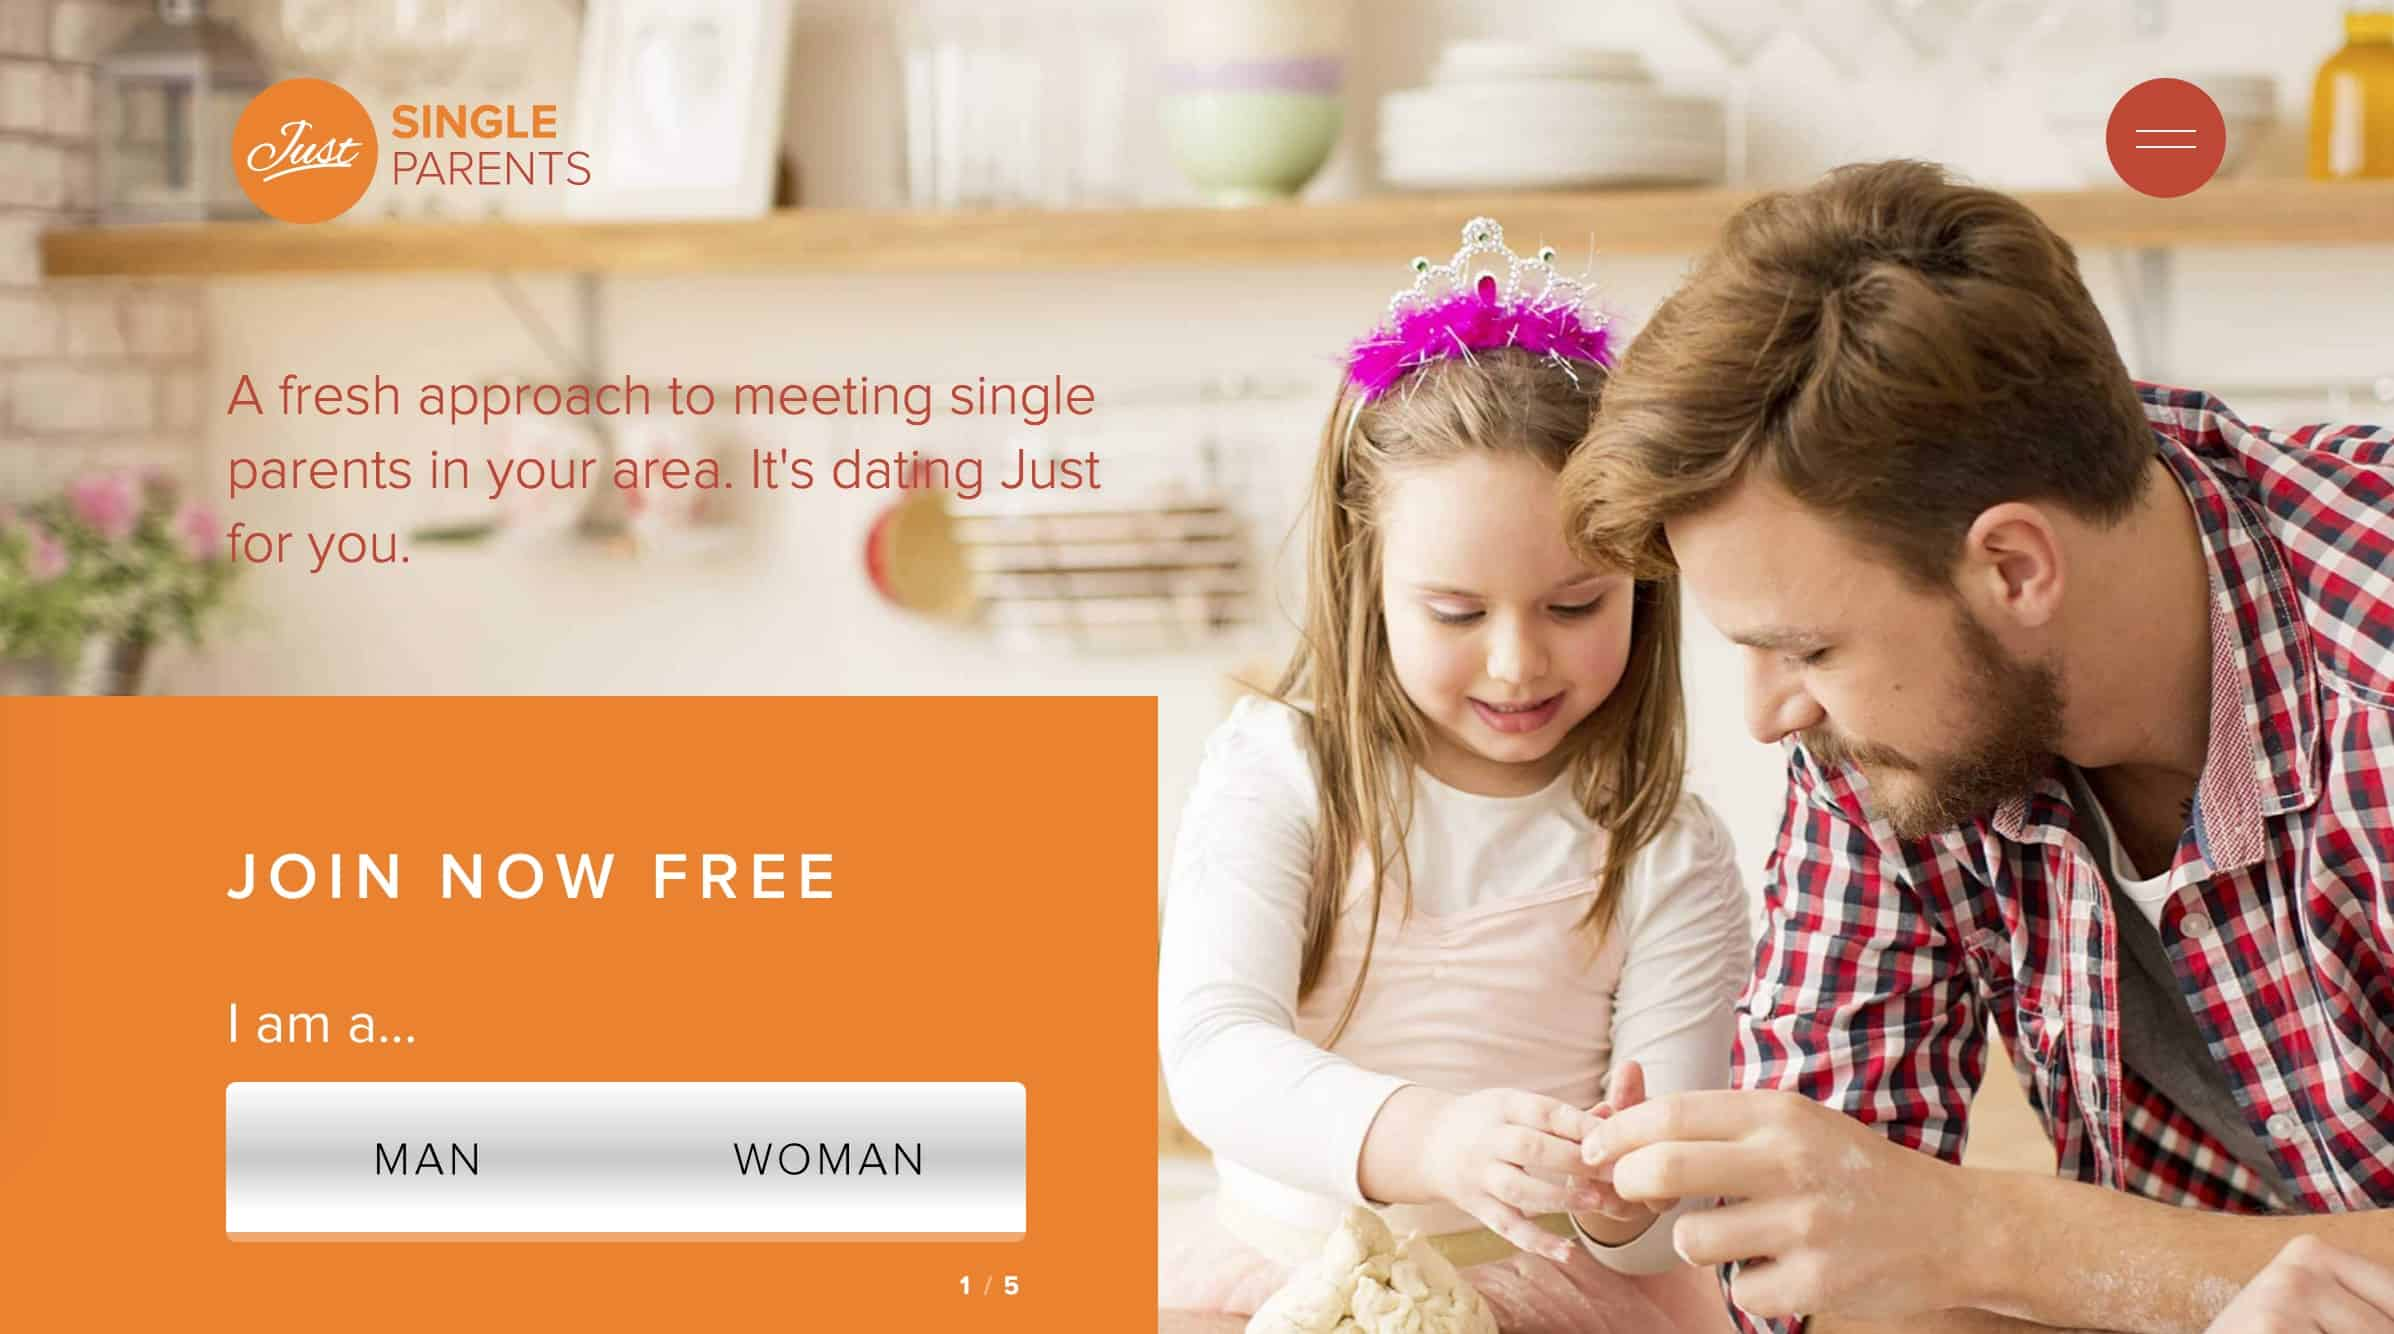 beverly single parent dating site Single parents near beverly bookmark page | site map single parent dating singleparentmeetcom is the premier online dating service for single parents.